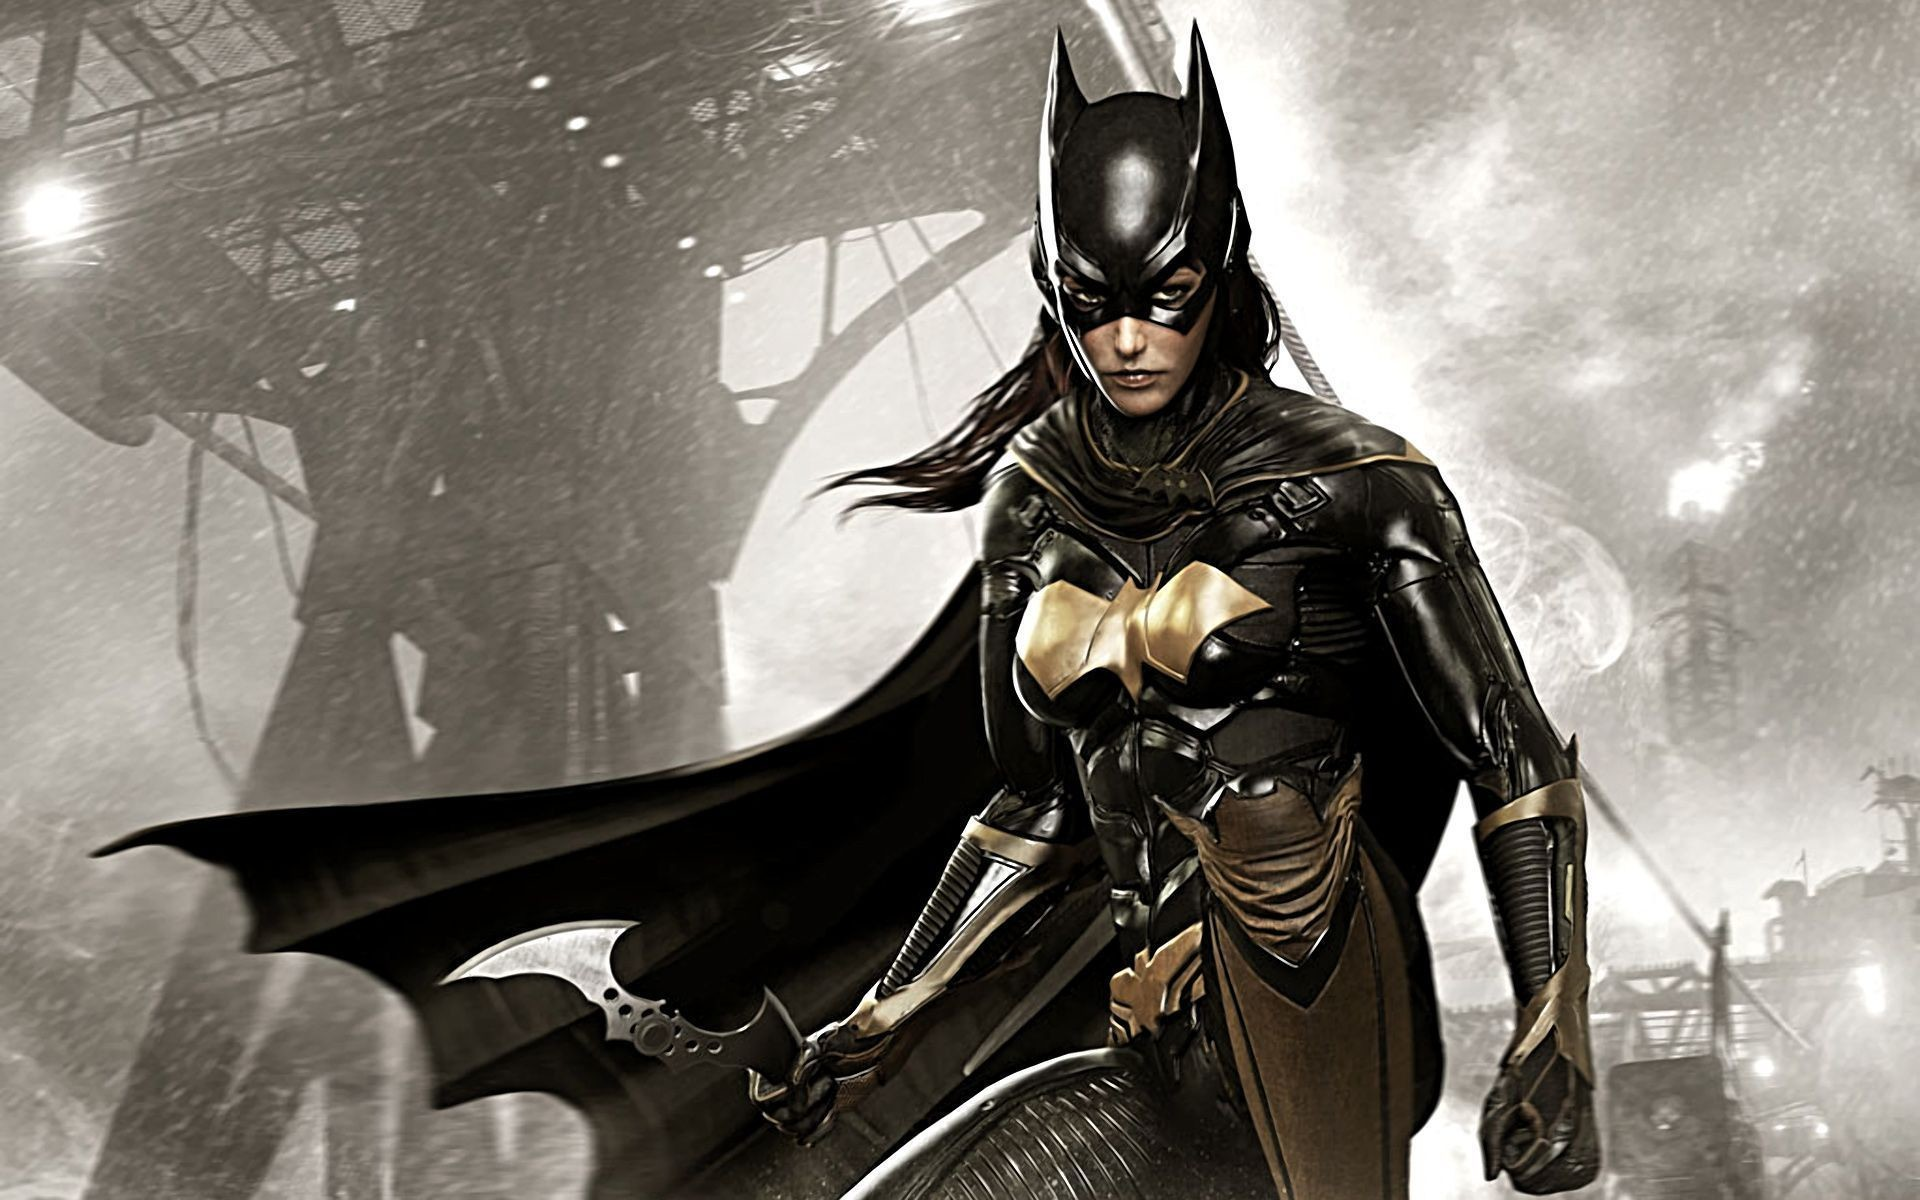 1920x1200 Batgirl in Batman Arkham Knight Wallpaper